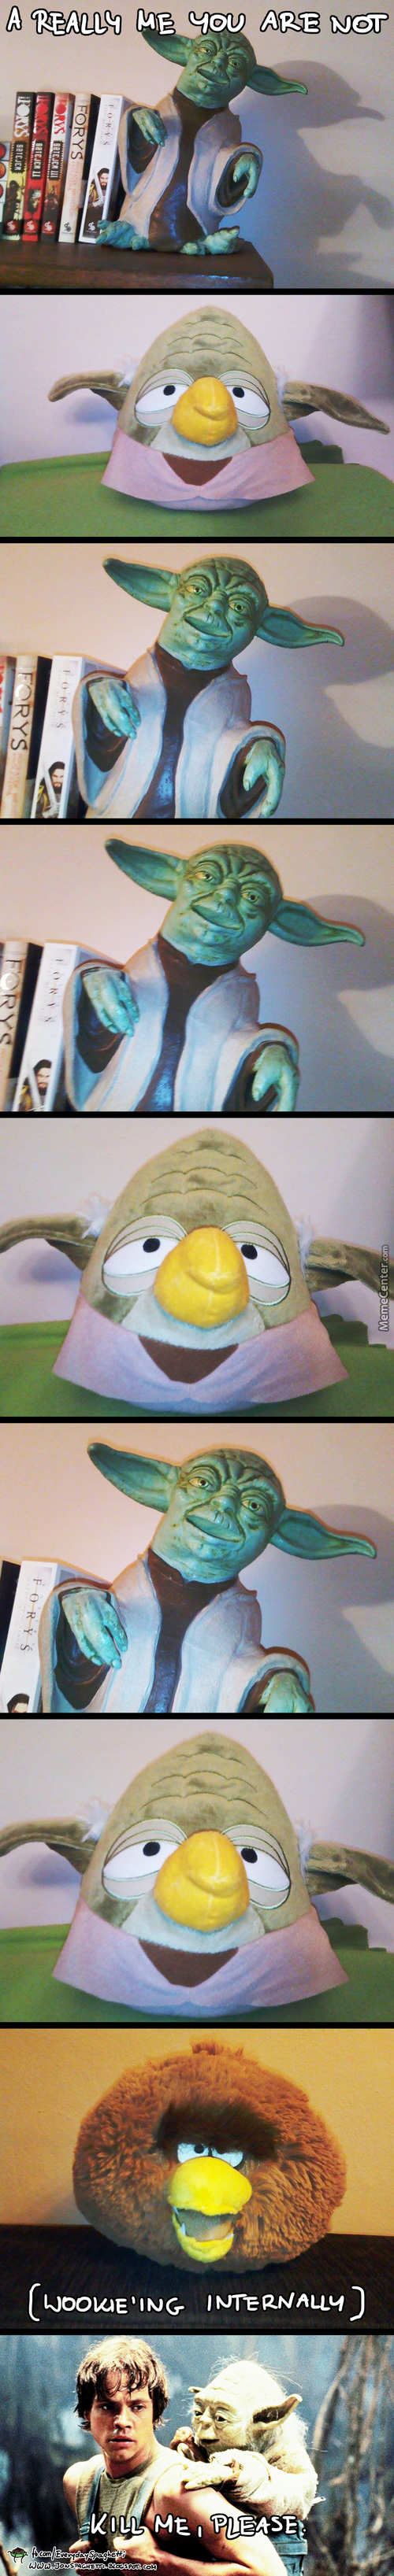 Yoda, What You Doing Are?